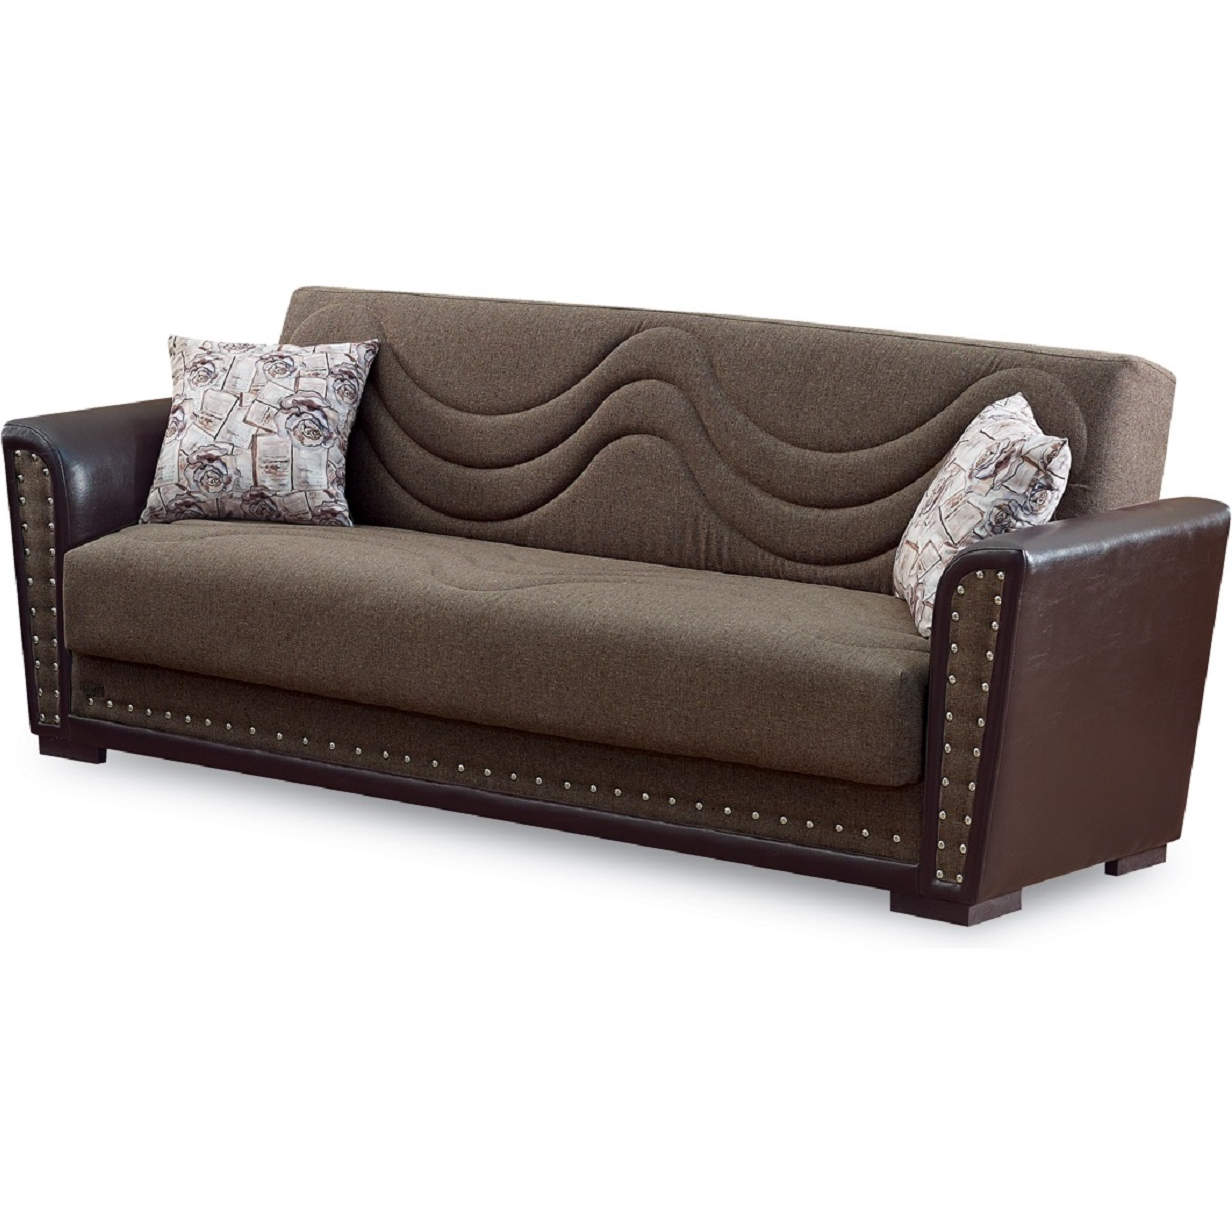 Toronto Sleeper Sofa in Brown Chenille & Leatherette by Empire Furniture